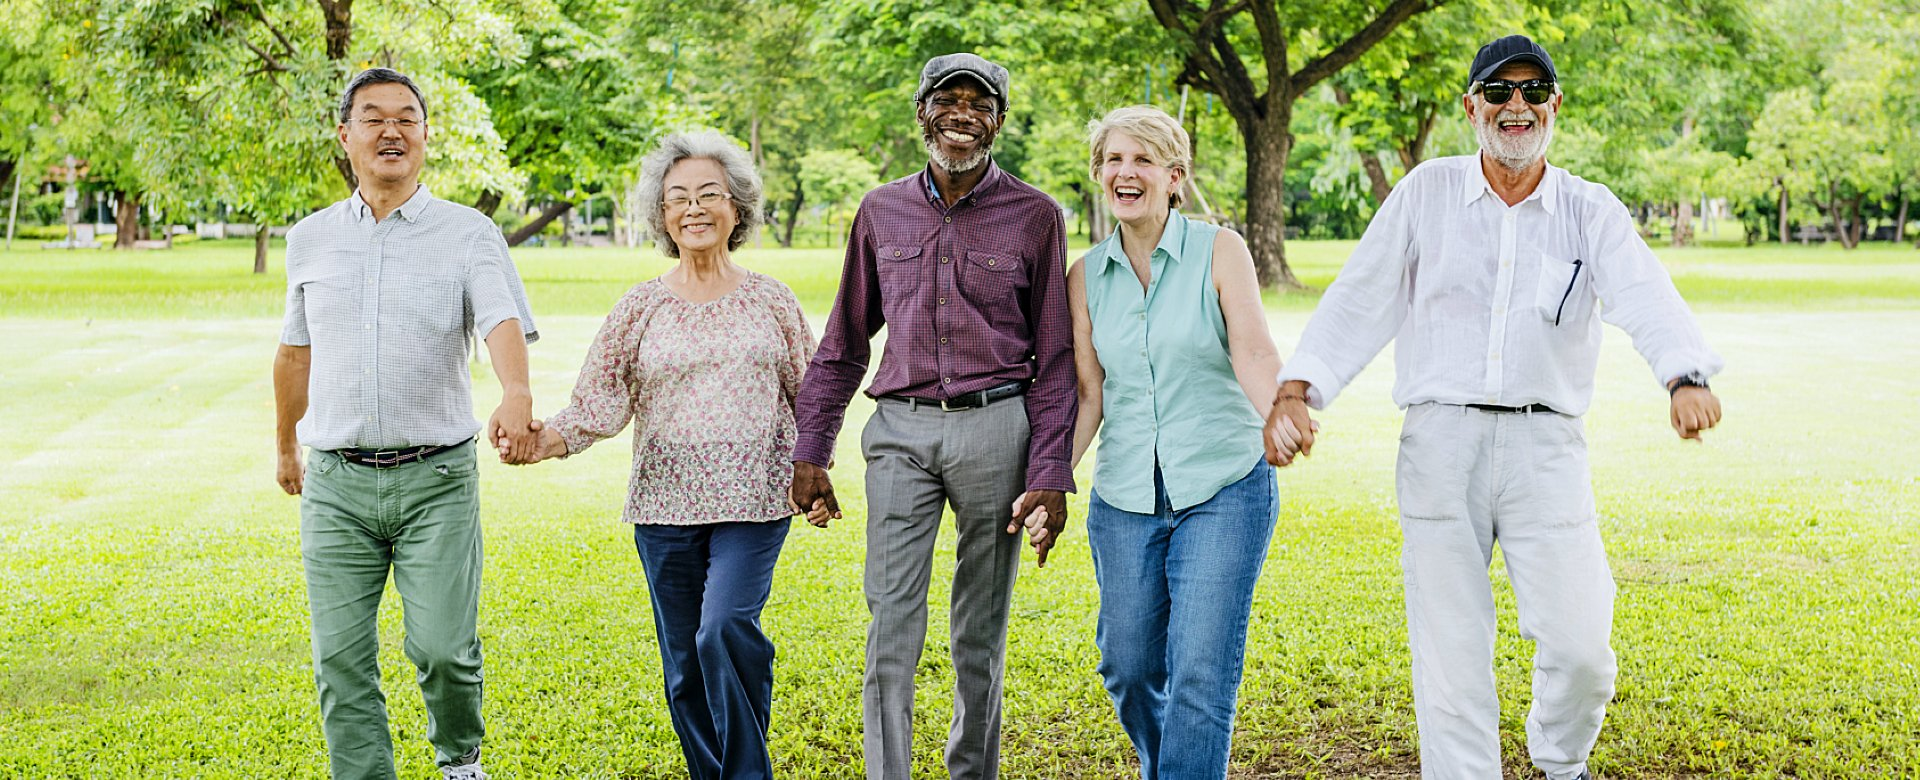 group of elderly people smiling